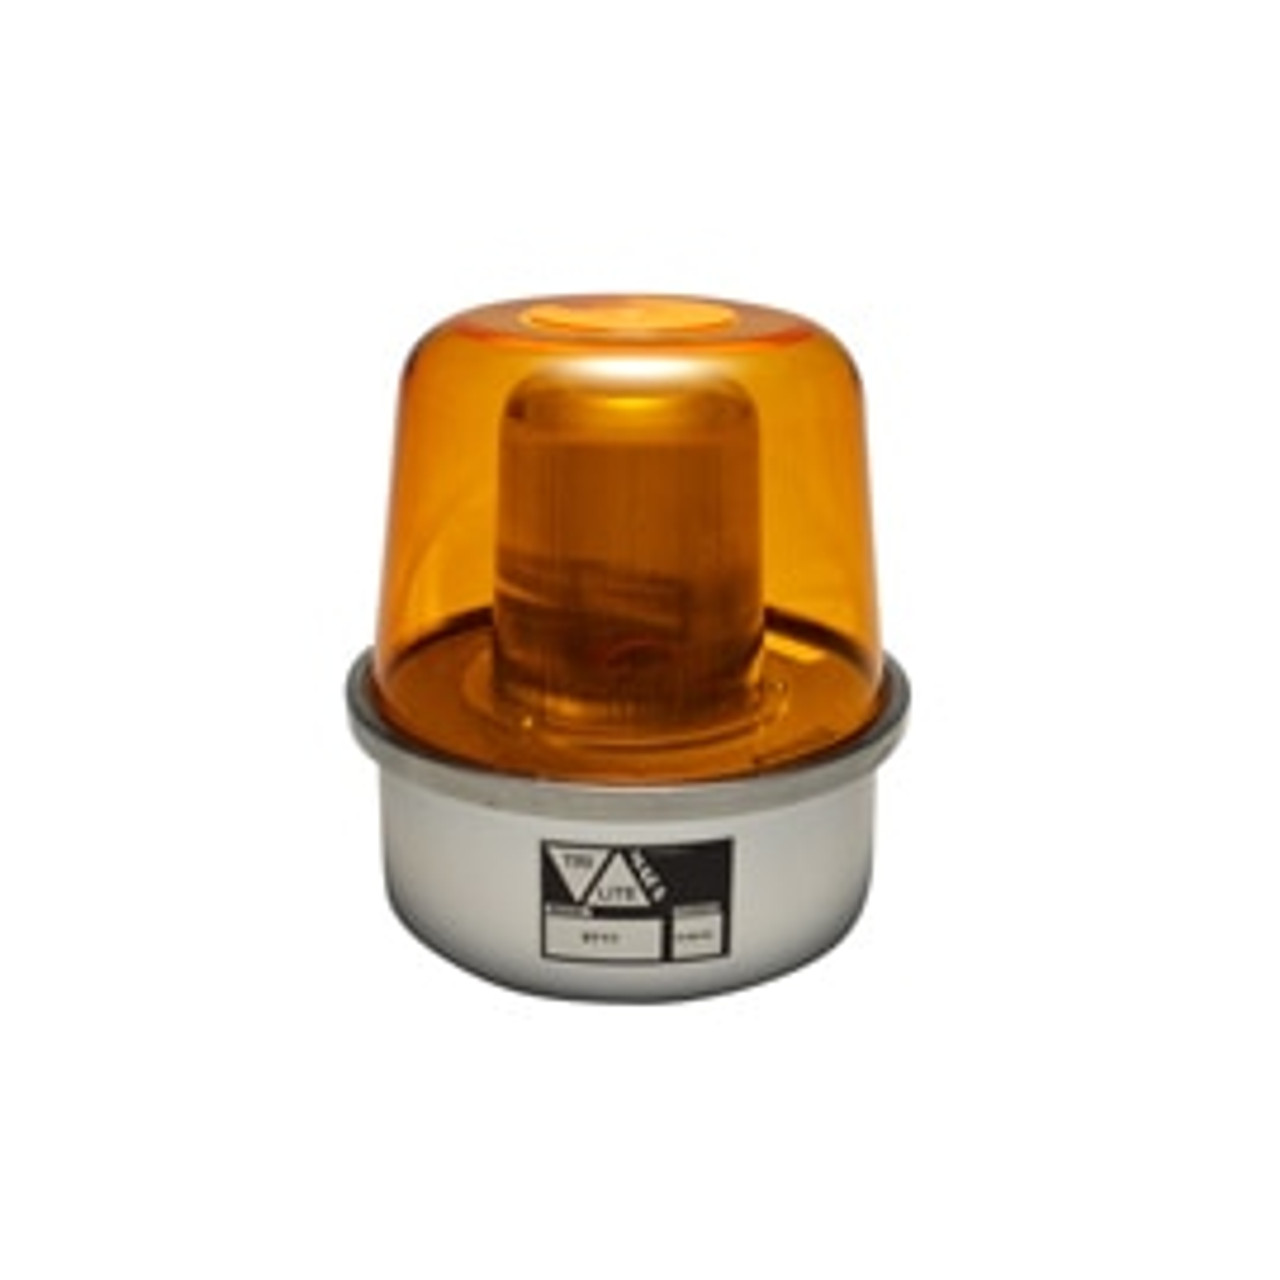 Trilite ST11 12VDC-48VDC Strobe Warning Light (Magnetic Mount)